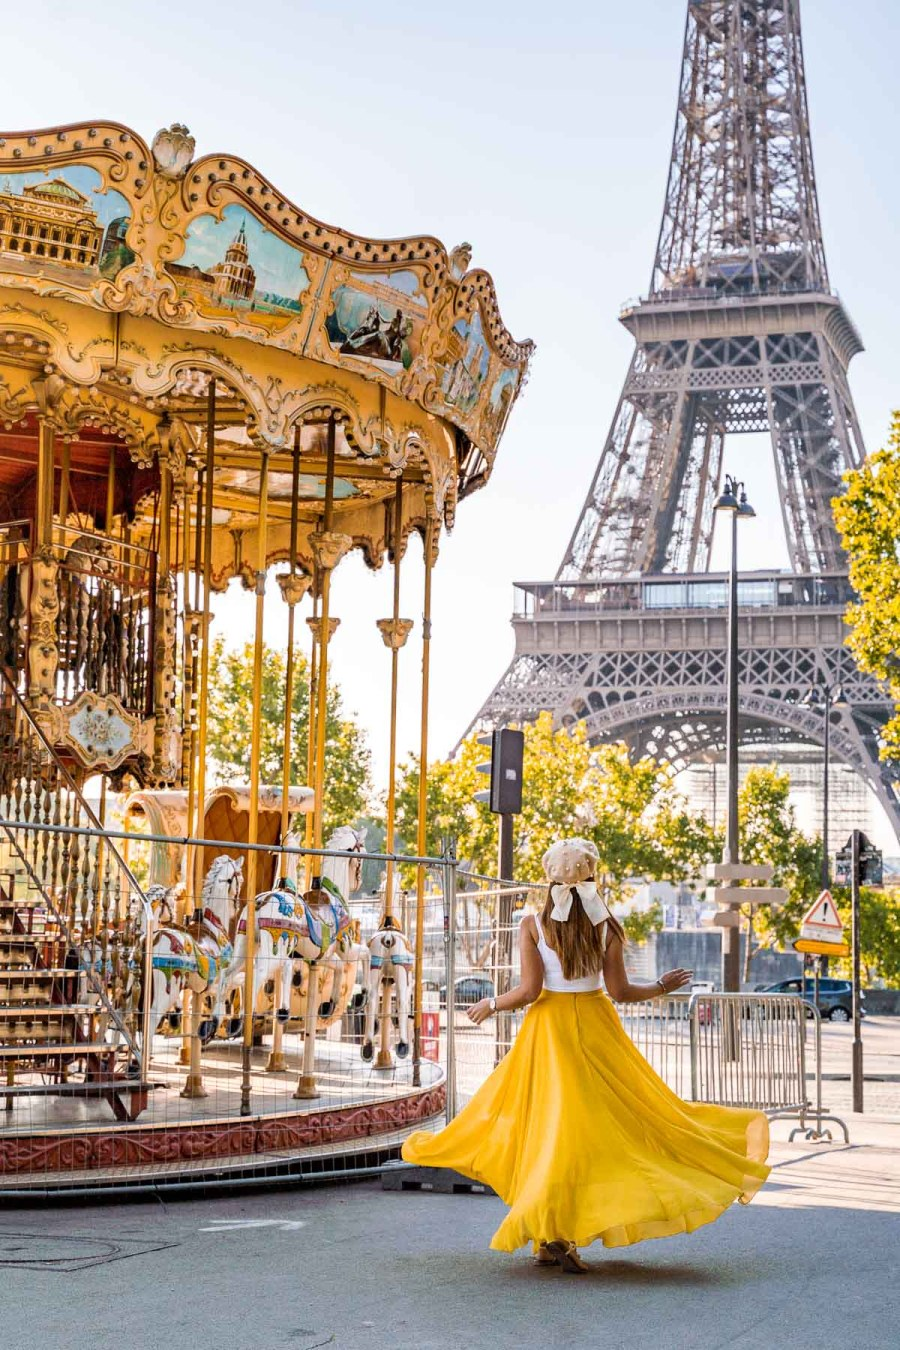 Girl in a yellow skirt twirling in front of a carousel near the Eiffel Tower in Paris